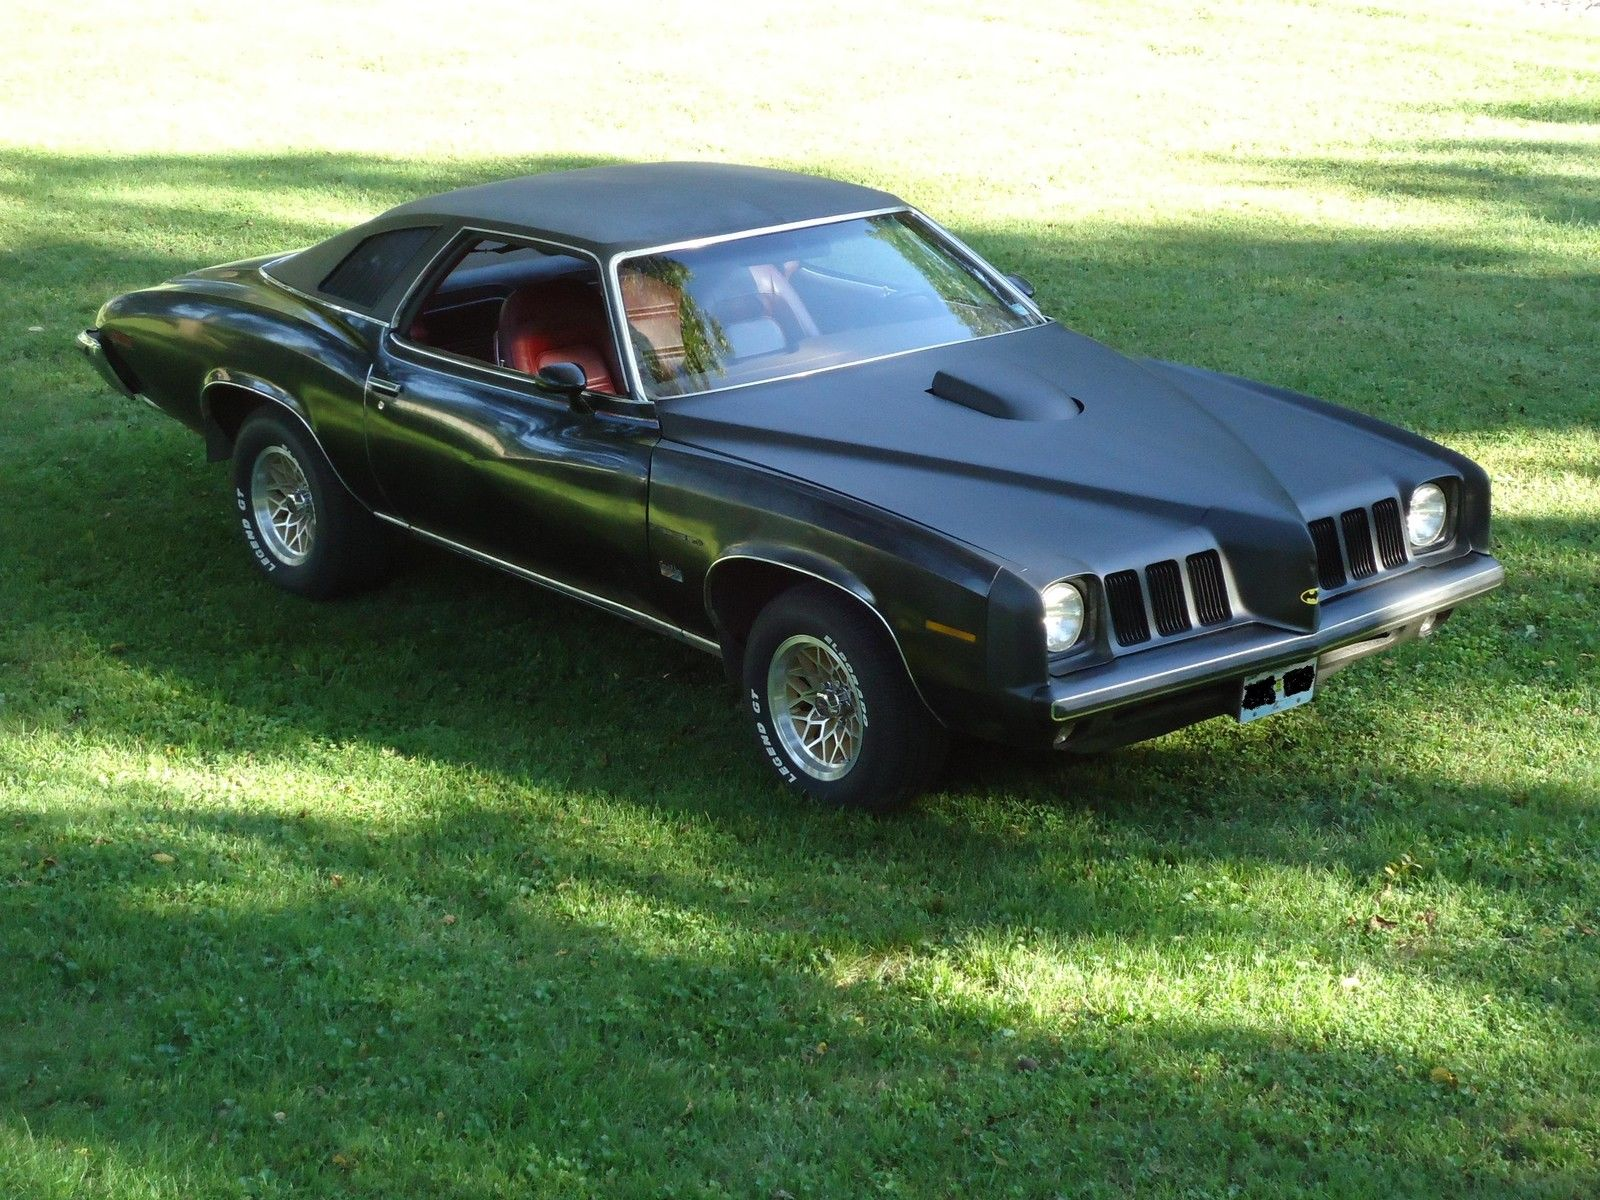 hight resolution of ebay find this 1973 pontiac grand am has a 400ci v8 and the lightning rods